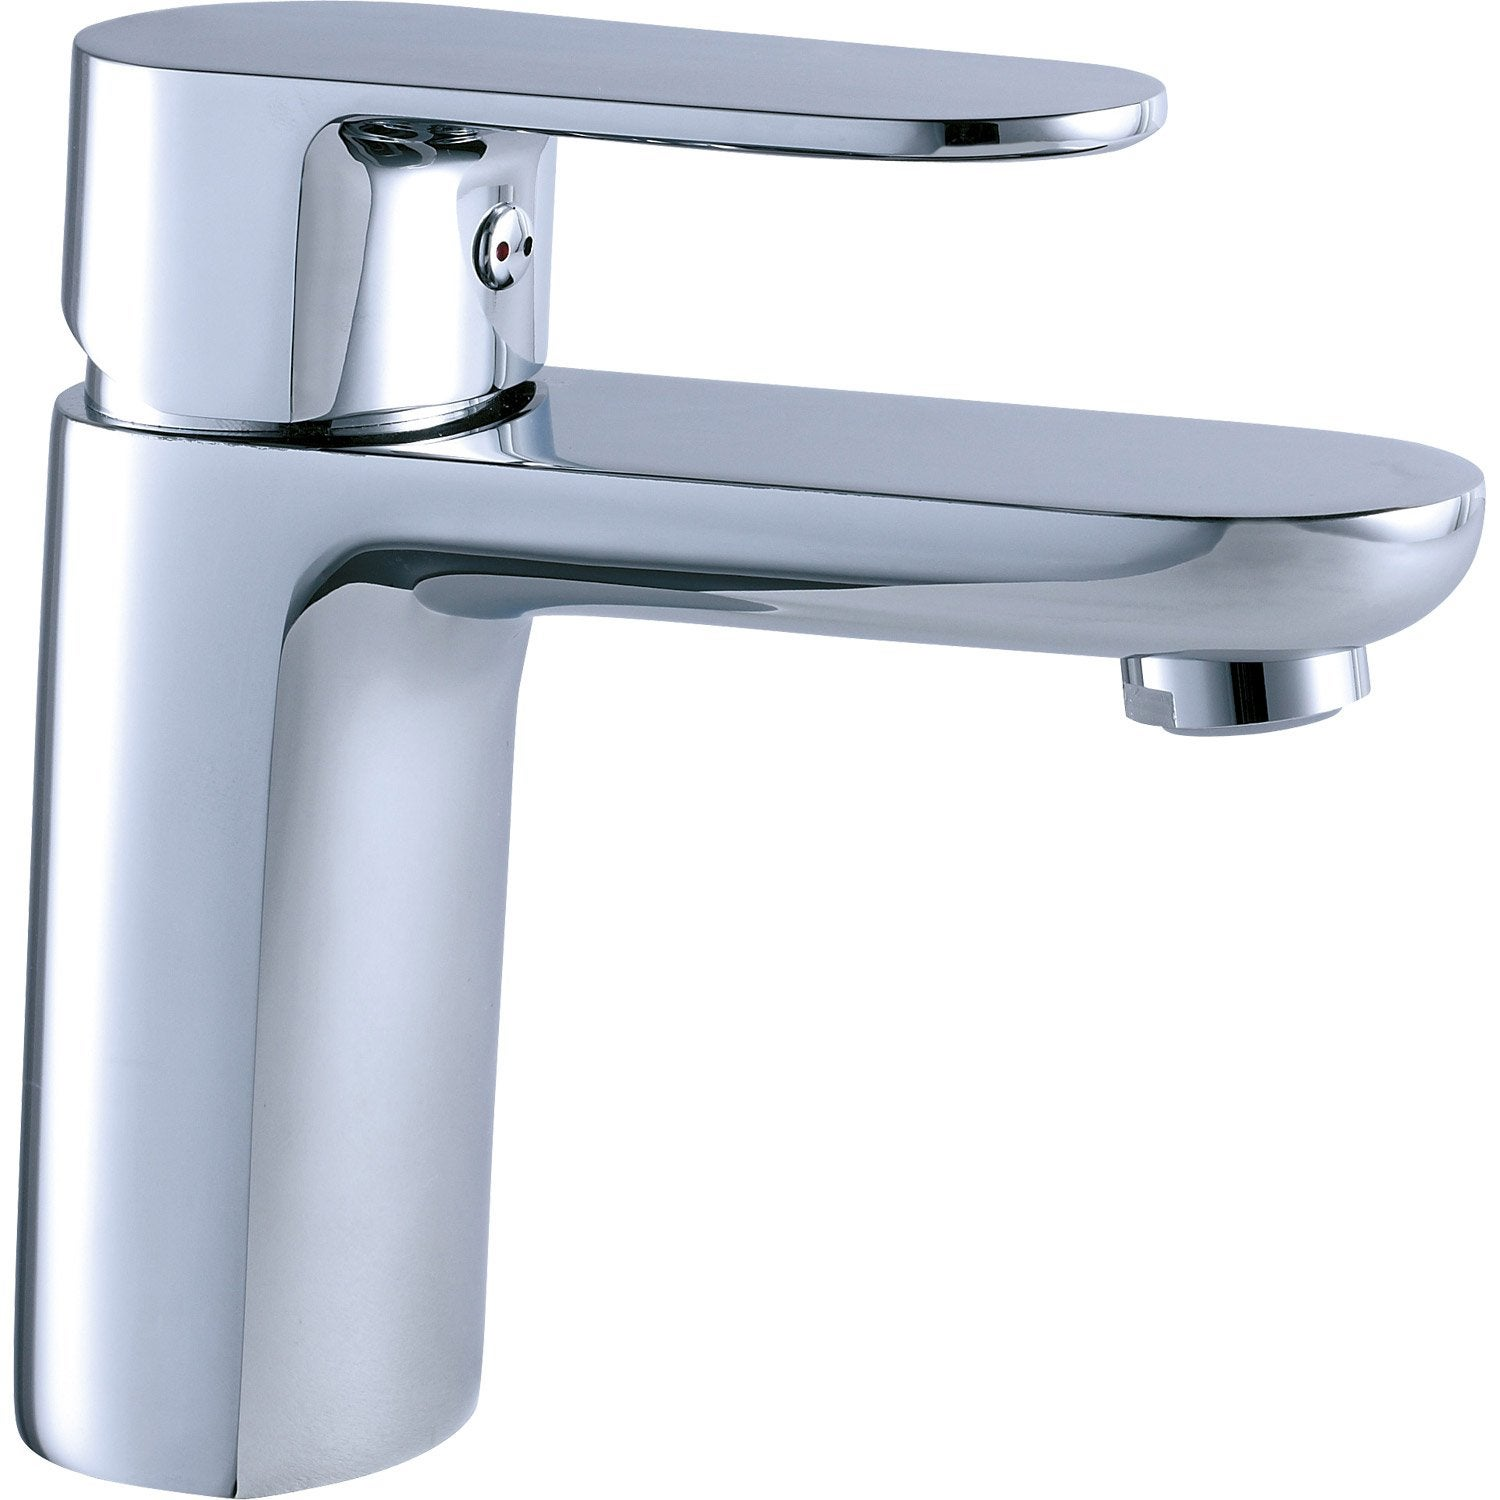 Mitigeur lavabo chrom sensea laly leroy merlin for Lavabo le roy merlin